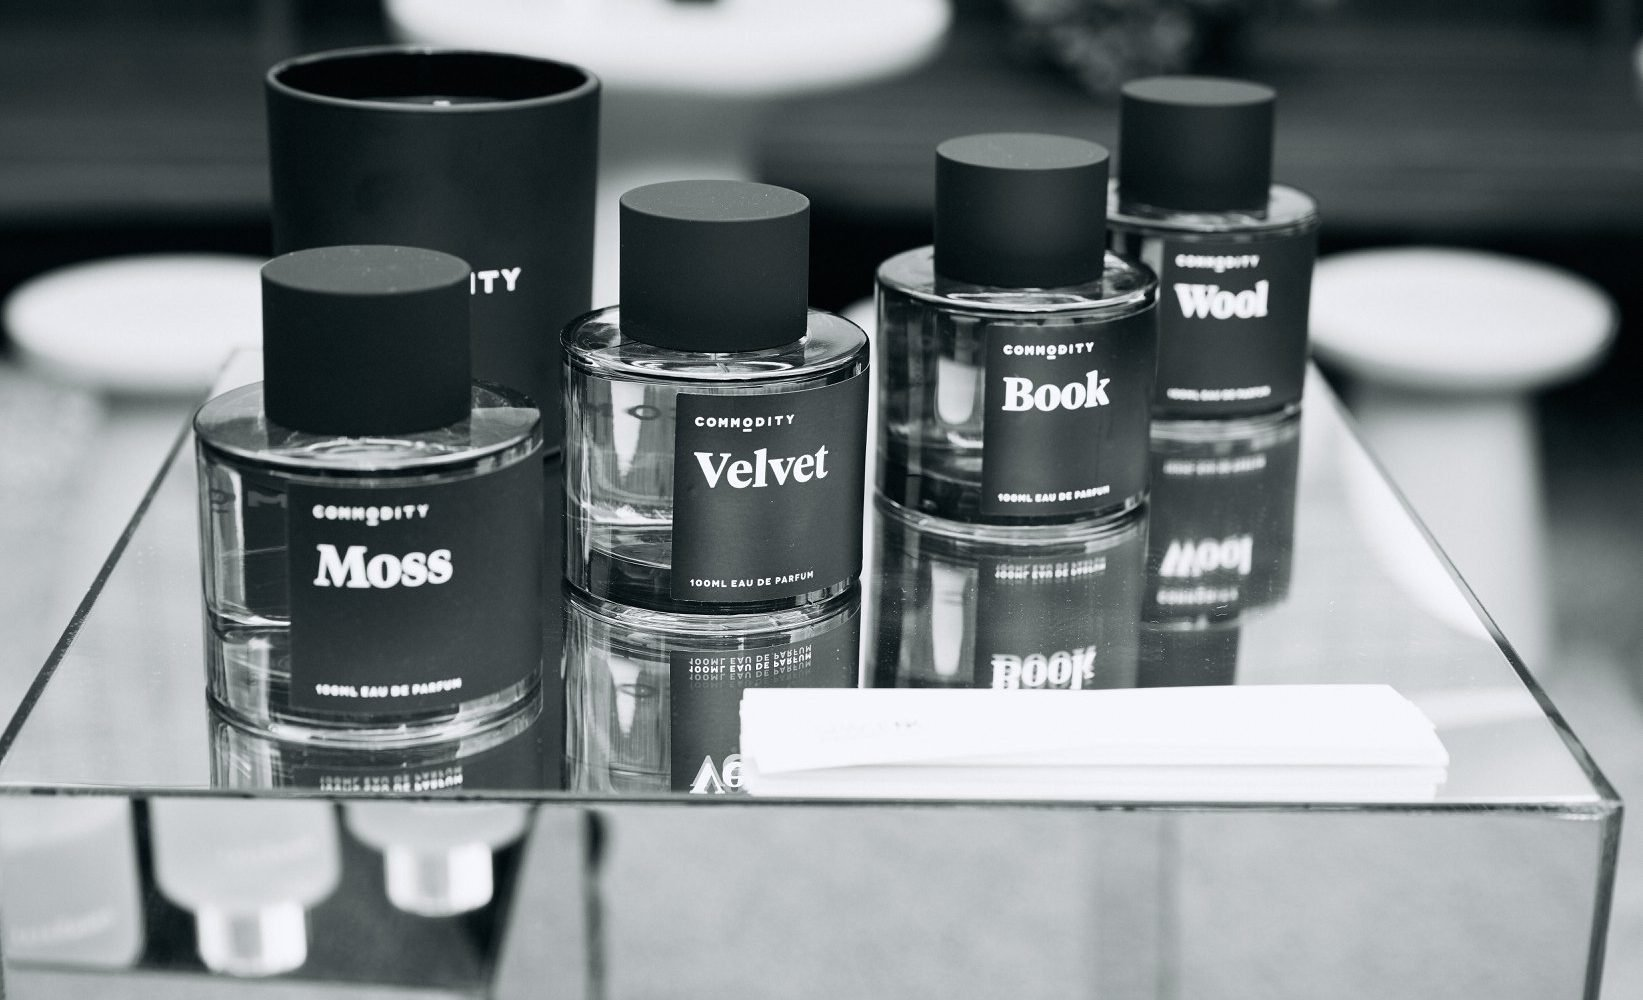 Once-Promising Niche Fragrance Brand Commodity Seems To Have Come To An End